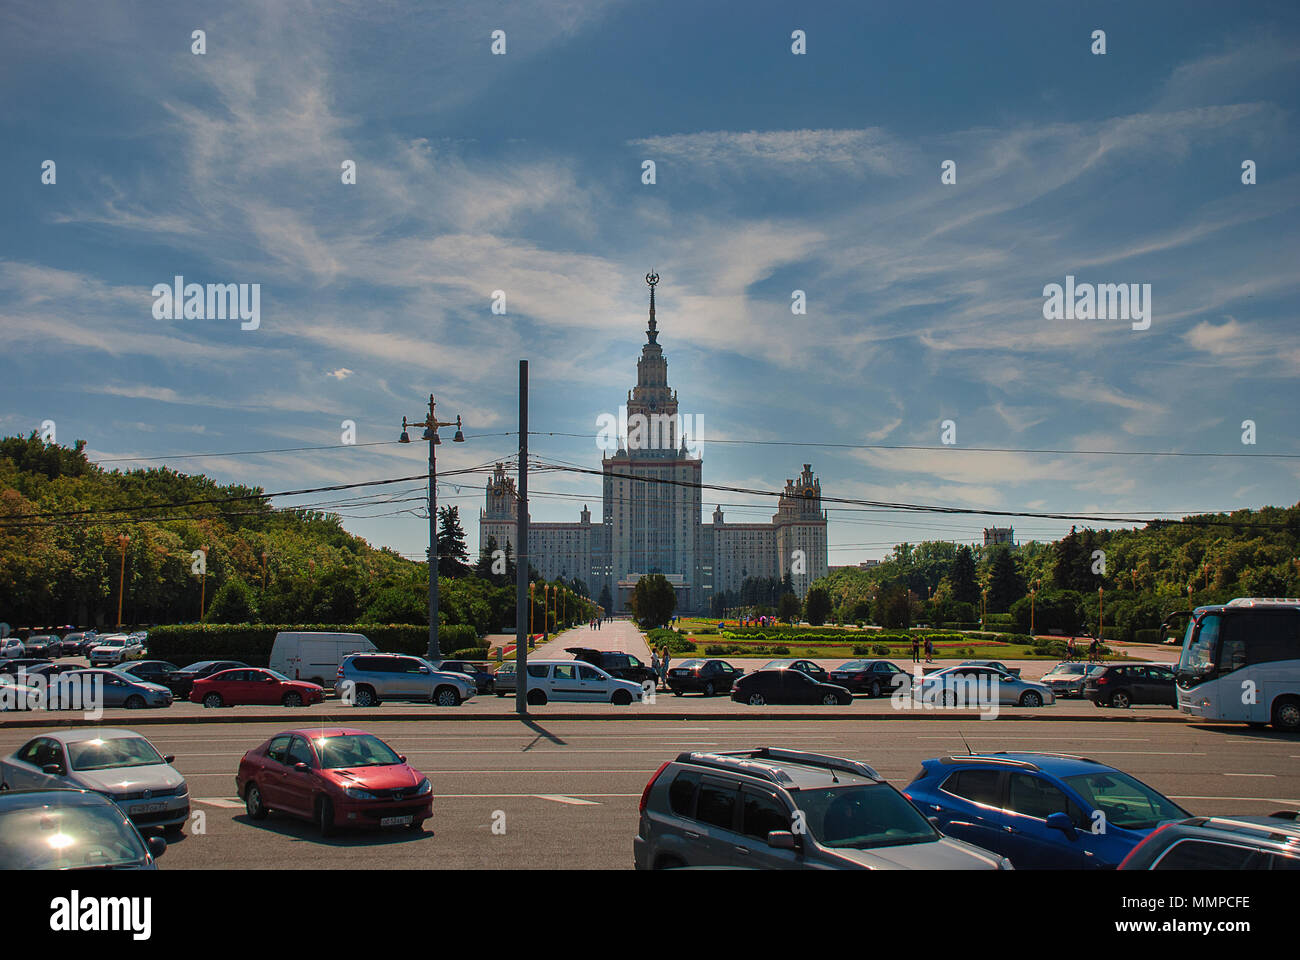 """Lomonosov Moscow State University, one of the """"Seven Sisters"""" in Moscow, Russia Stock Photo"""